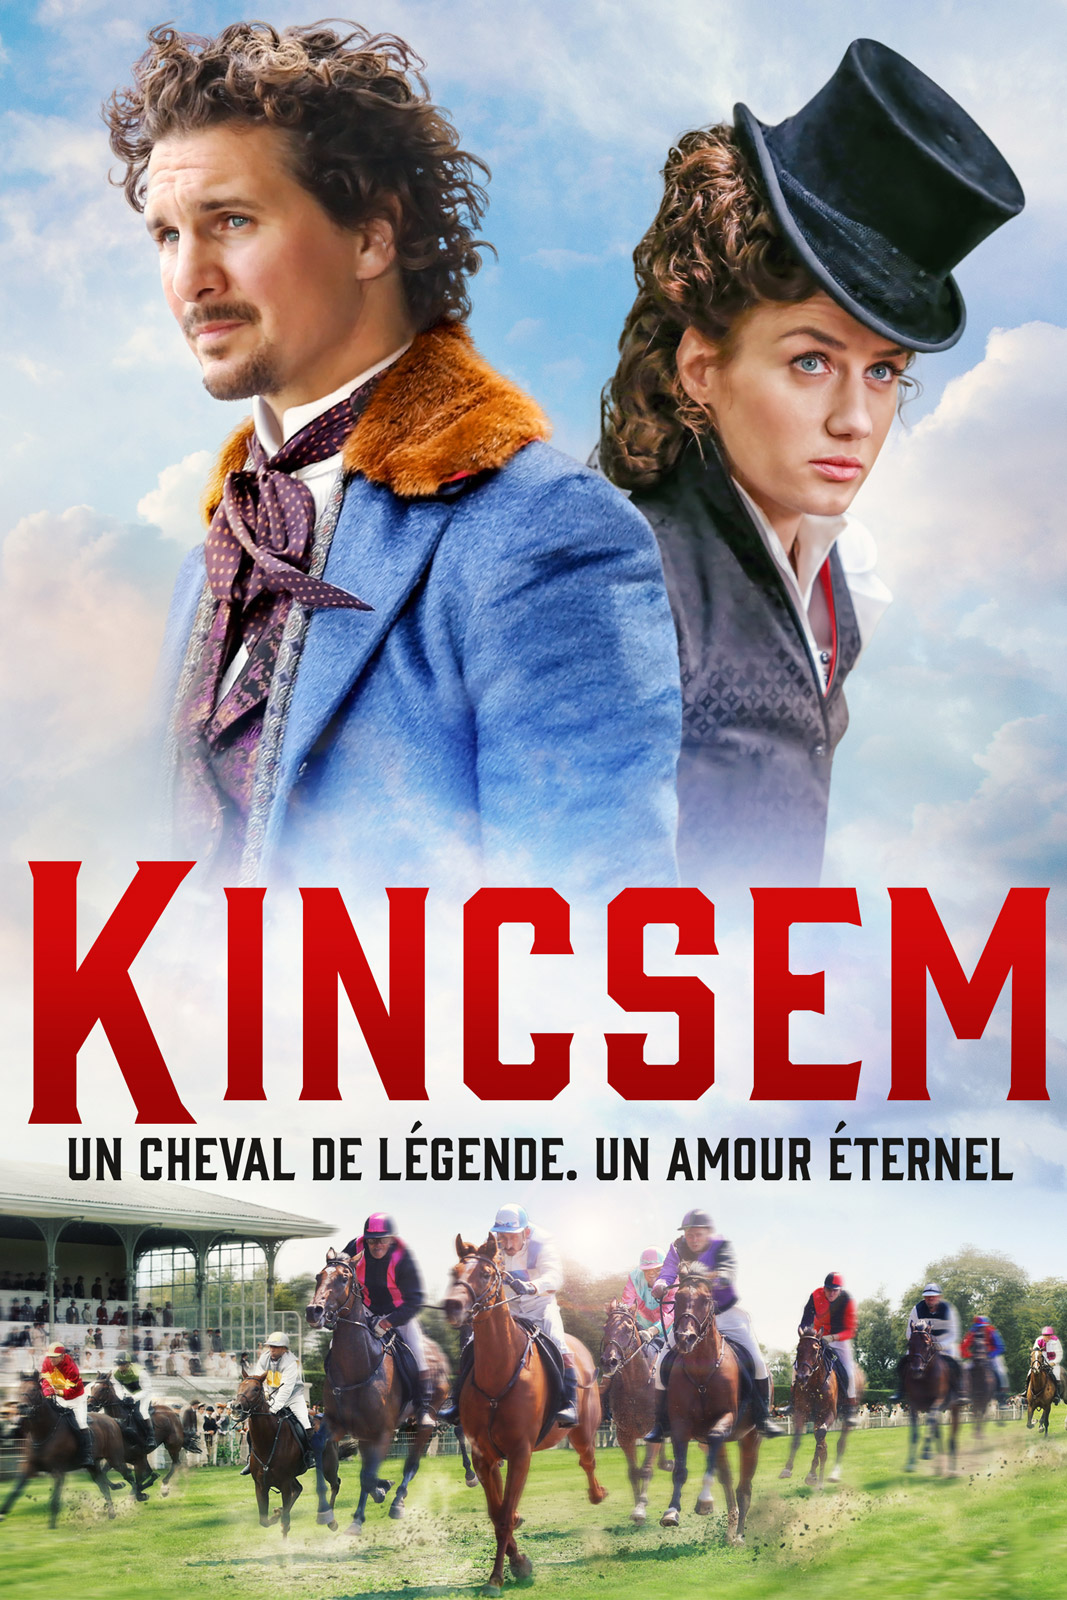 Kincsem FRENCH HDRip